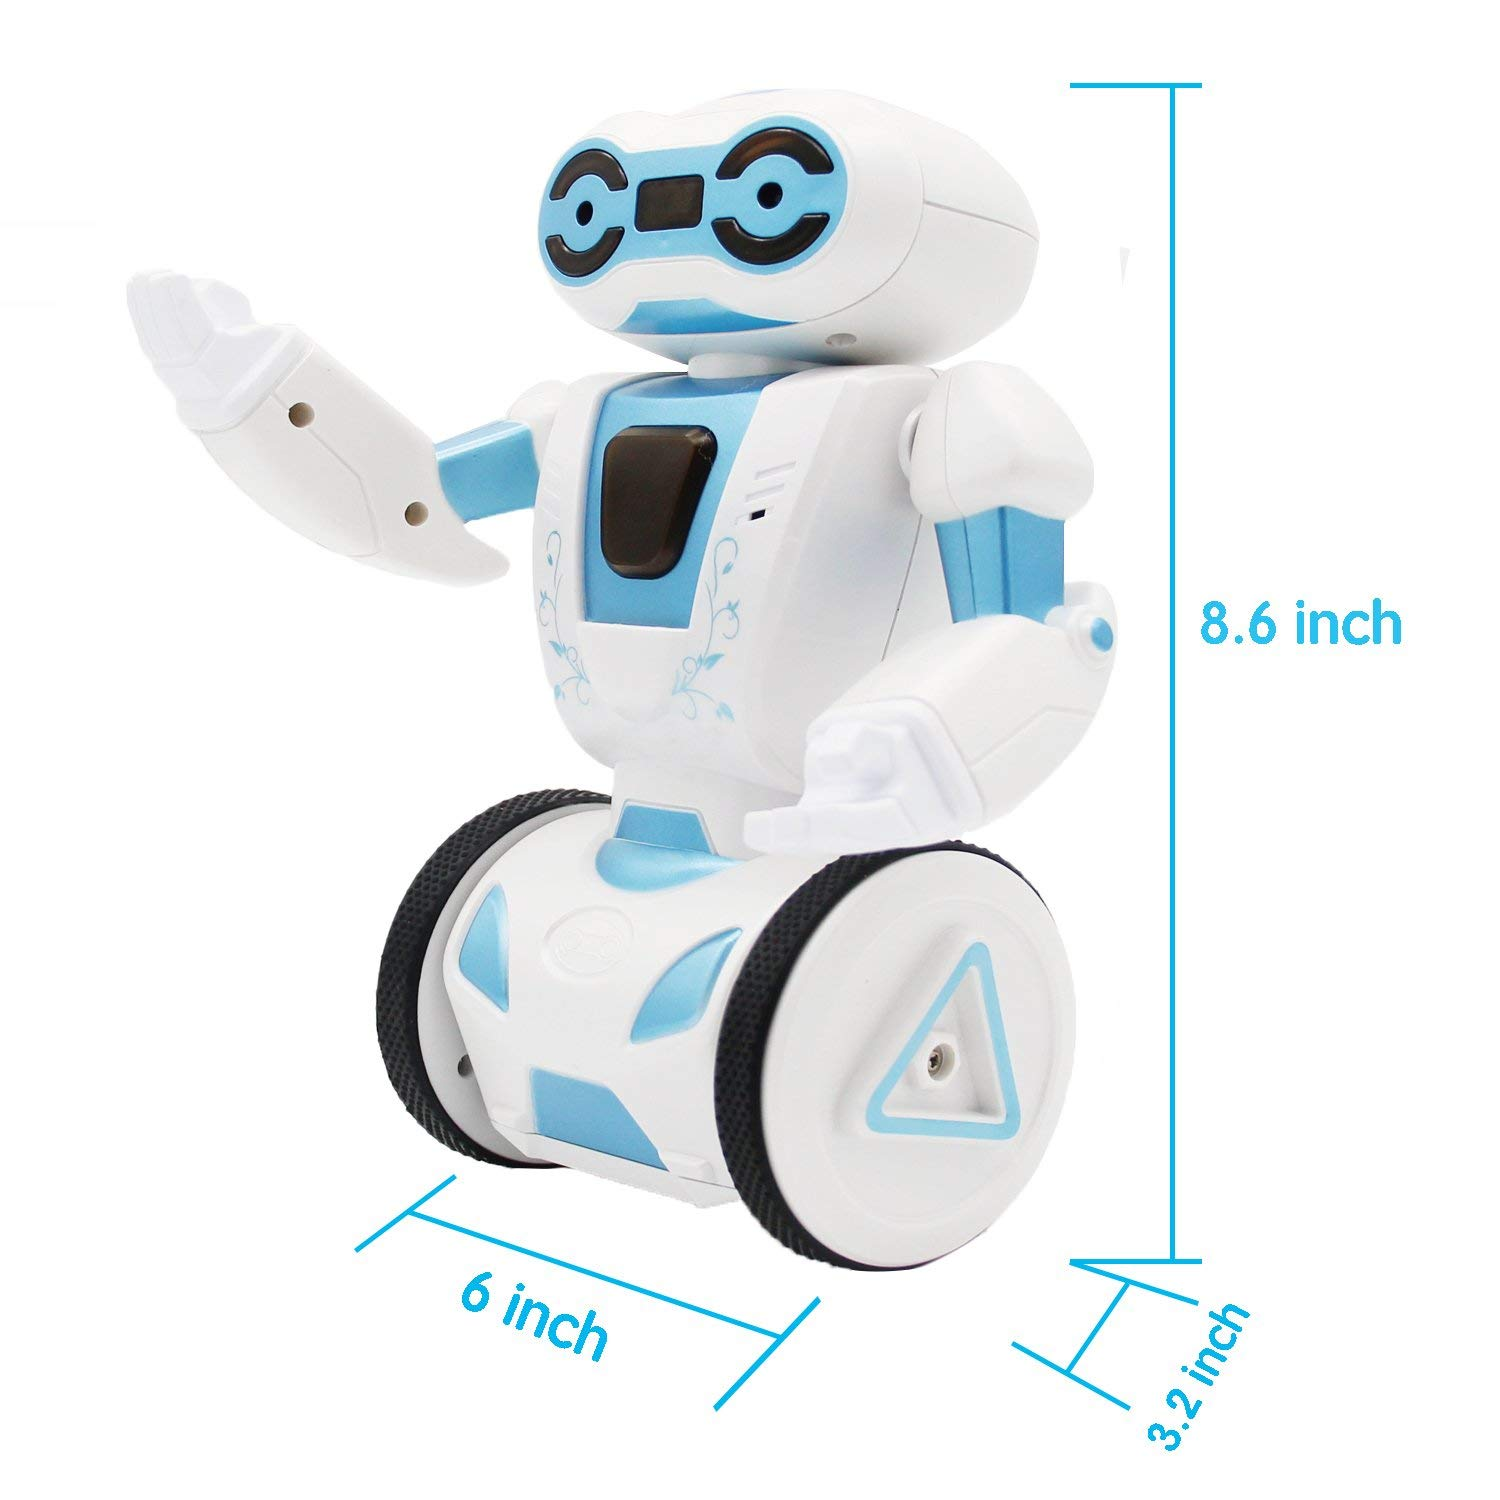 Hi-Tech 2.4GHz Remote Control Robot Smart Toys, 5 Modes Interactive Robot for Kids,Children,Girls, Boys by HI-TECH OPTOELETRONICS CO., LTD. (Image #2)